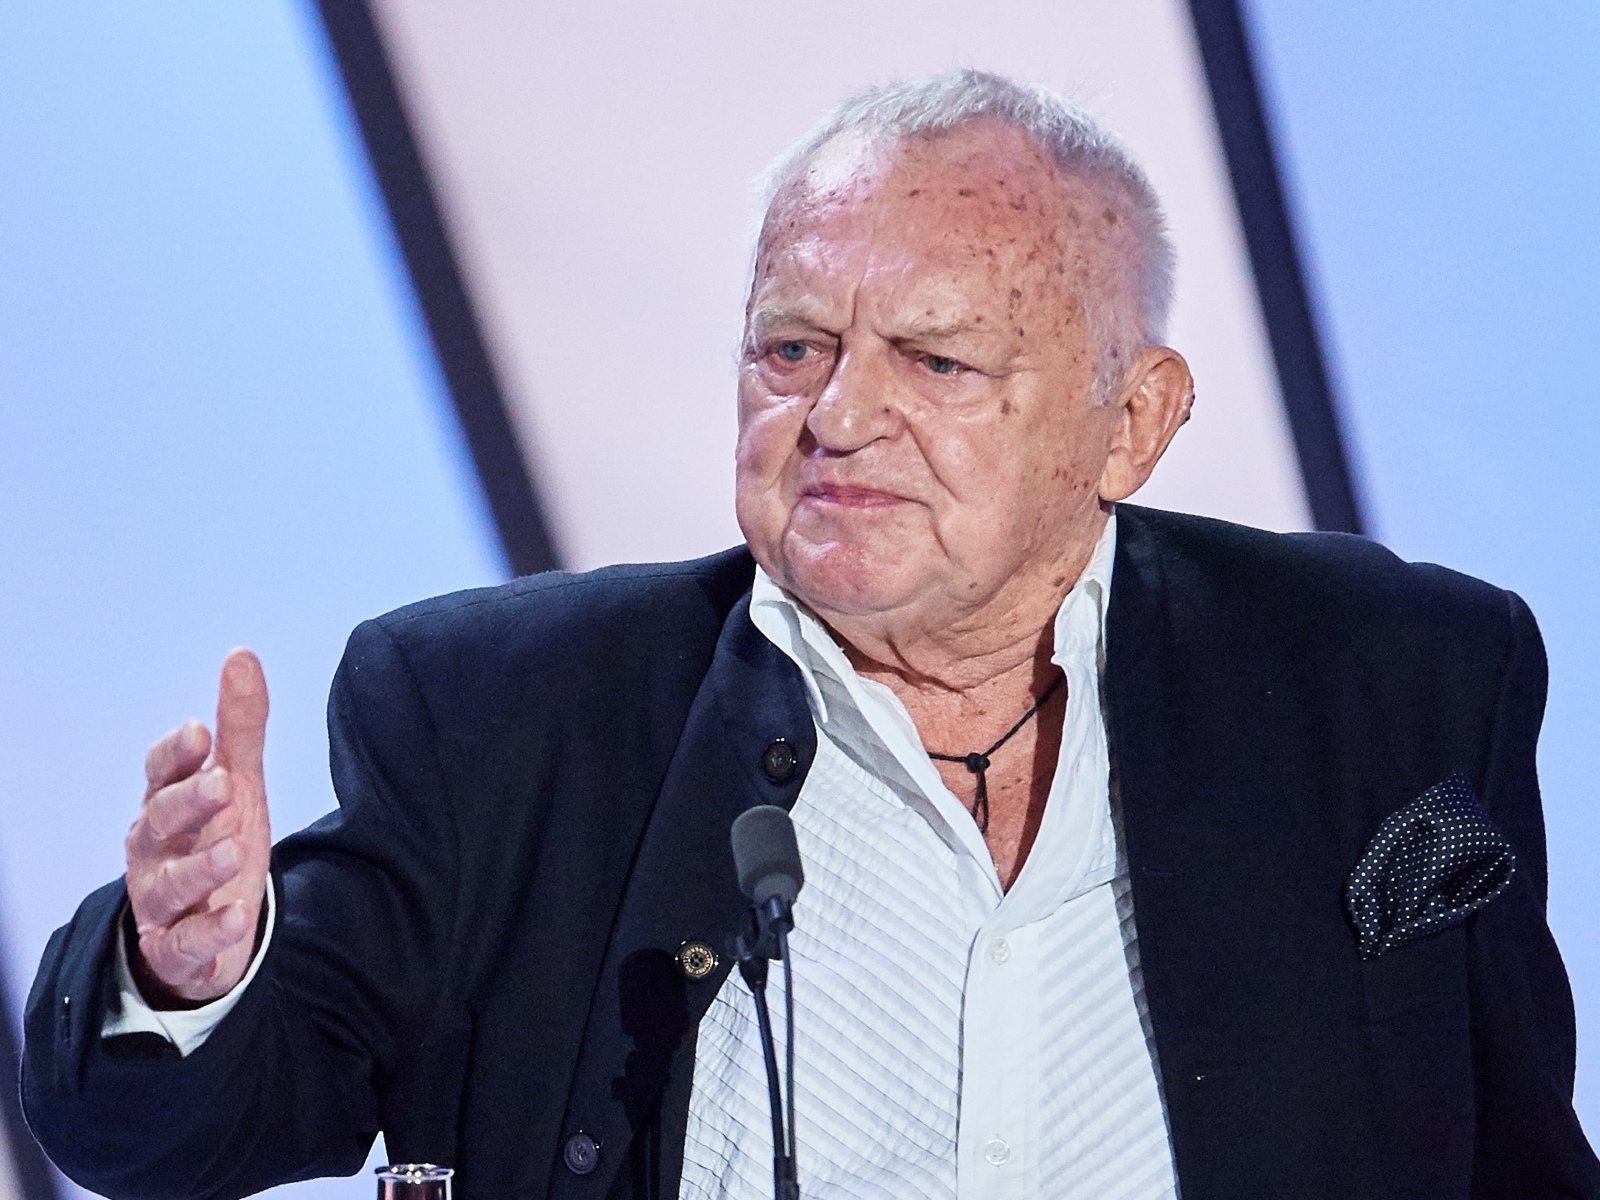 Famous Polish director Jerzy Gruza dies at 87